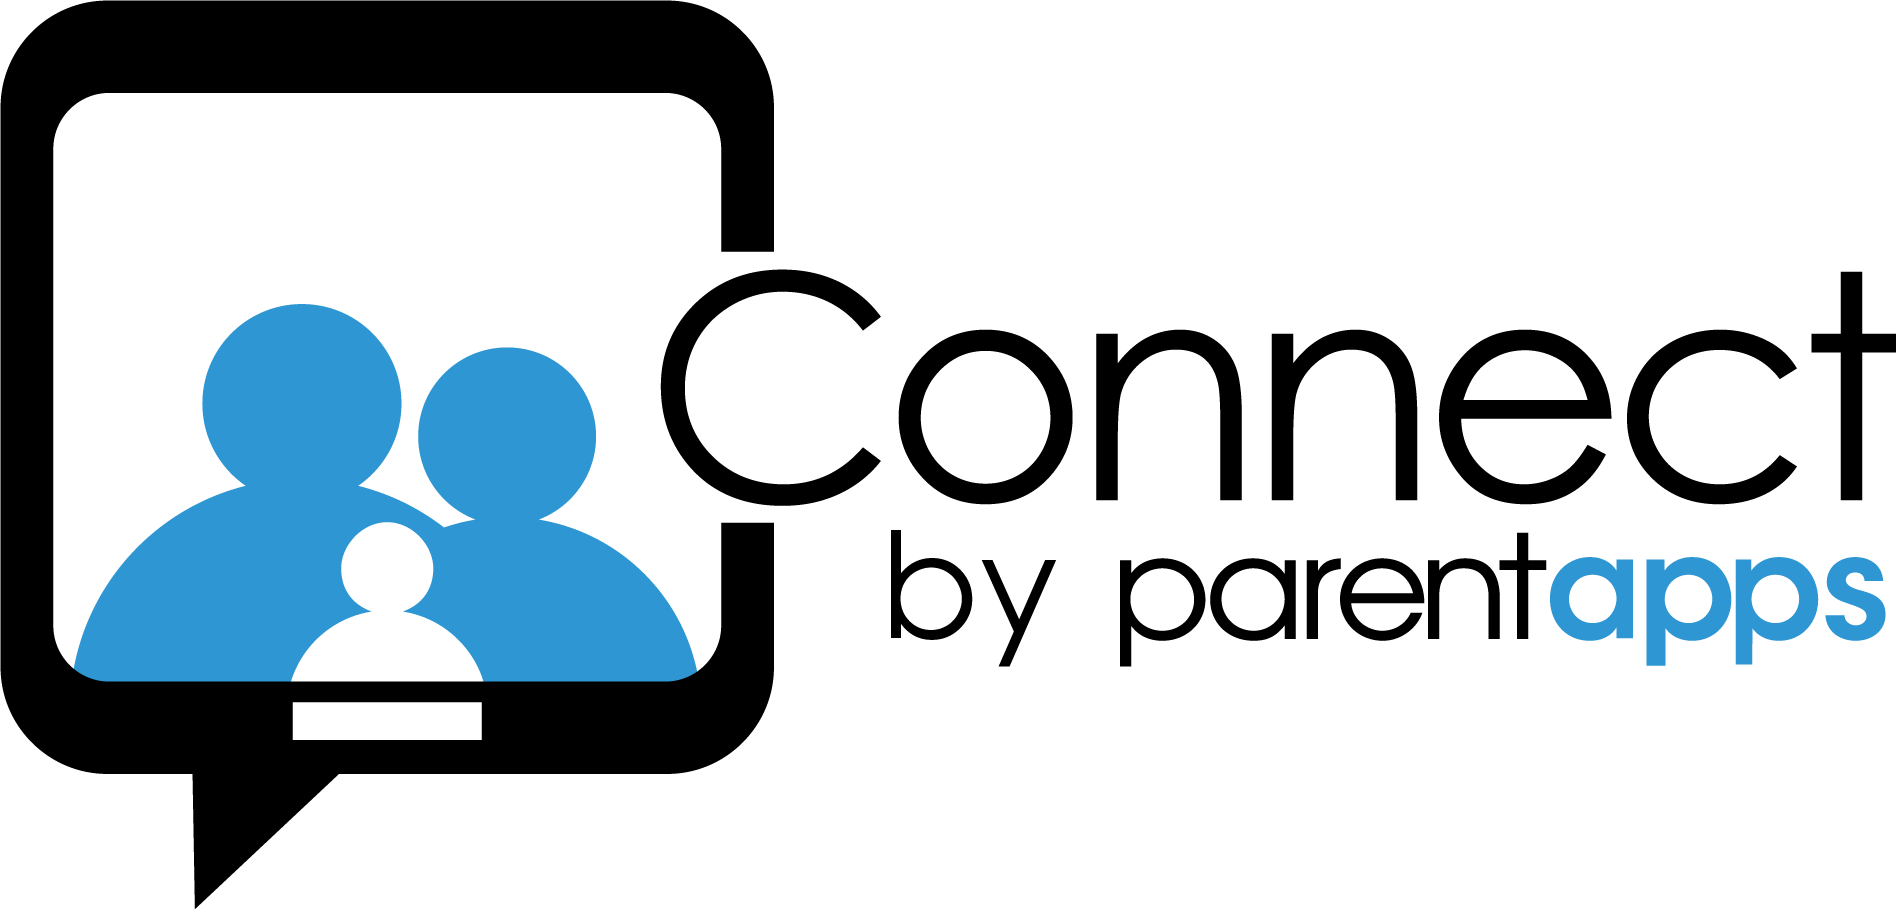 Soon We Will Be Using Our New App, Parentapps Connect, - Graphic ...